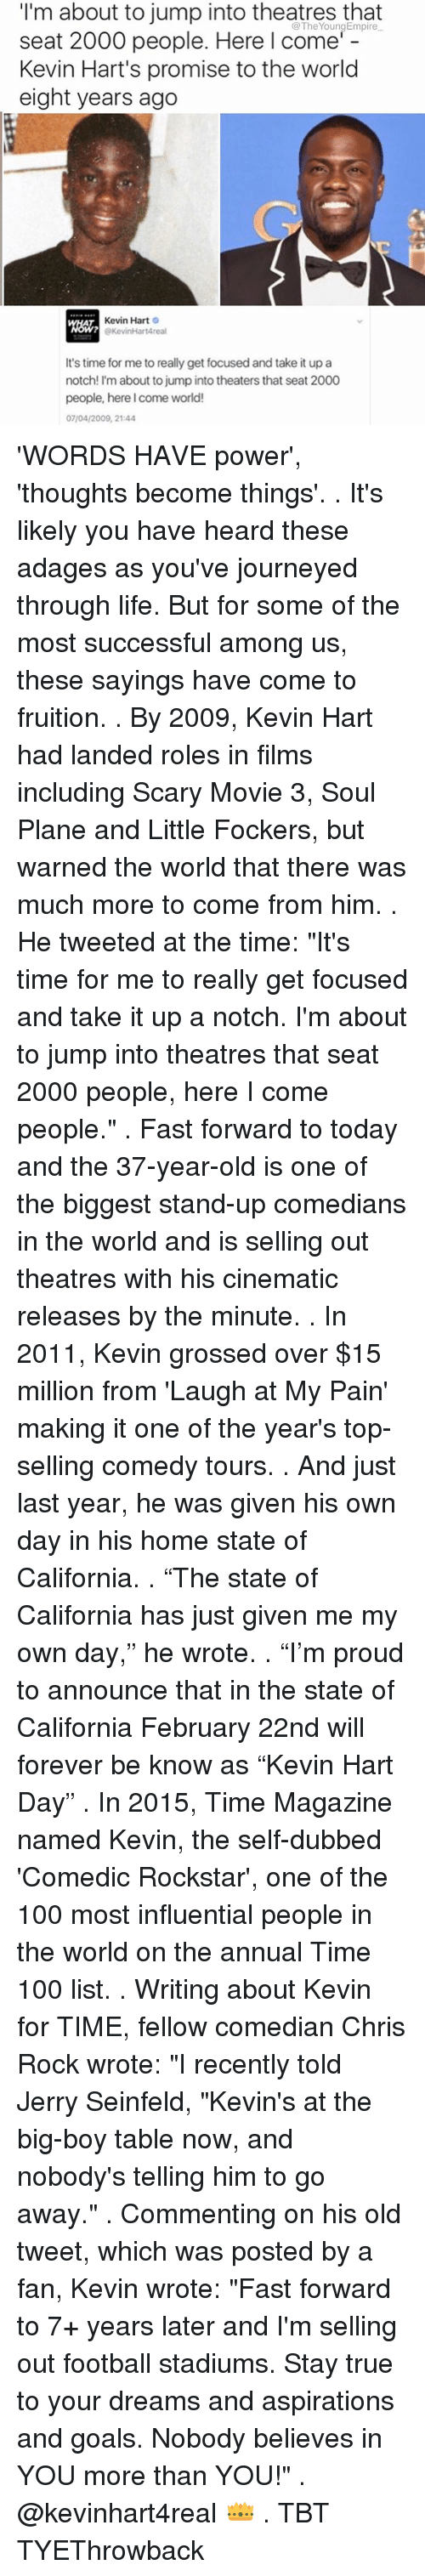 """laugh at my pain: I'm about to jump into theatres that  seat 2000 people. Here I come'  Kevin Hart's promise to the world  eight years ago  Kevin Hart  O  @KevinHartAreal  It's time for me to really get focused and take it up a  notch! I'm about to jump into theaters that seat 2000  people, here I come world!  07/04/2009, 21:44 'WORDS HAVE power', 'thoughts become things'. . It's likely you have heard these adages as you've journeyed through life. But for some of the most successful among us, these sayings have come to fruition. . By 2009, Kevin Hart had landed roles in films including Scary Movie 3, Soul Plane and Little Fockers, but warned the world that there was much more to come from him. . He tweeted at the time: """"It's time for me to really get focused and take it up a notch. I'm about to jump into theatres that seat 2000 people, here I come people."""" . Fast forward to today and the 37-year-old is one of the biggest stand-up comedians in the world and is selling out theatres with his cinematic releases by the minute. . In 2011, Kevin grossed over $15 million from 'Laugh at My Pain' making it one of the year's top-selling comedy tours. . And just last year, he was given his own day in his home state of California. . """"The state of California has just given me my own day,"""" he wrote. . """"I'm proud to announce that in the state of California February 22nd will forever be know as """"Kevin Hart Day"""" . In 2015, Time Magazine named Kevin, the self-dubbed 'Comedic Rockstar', one of the 100 most influential people in the world on the annual Time 100 list. . Writing about Kevin for TIME, fellow comedian Chris Rock wrote: """"I recently told Jerry Seinfeld, """"Kevin's at the big-boy table now, and nobody's telling him to go away."""" . Commenting on his old tweet, which was posted by a fan, Kevin wrote: """"Fast forward to 7+ years later and I'm selling out football stadiums. Stay true to your dreams and aspirations and goals. Nobody believes in YOU more than YOU!"""" . @kevinhart4real 👑 . """